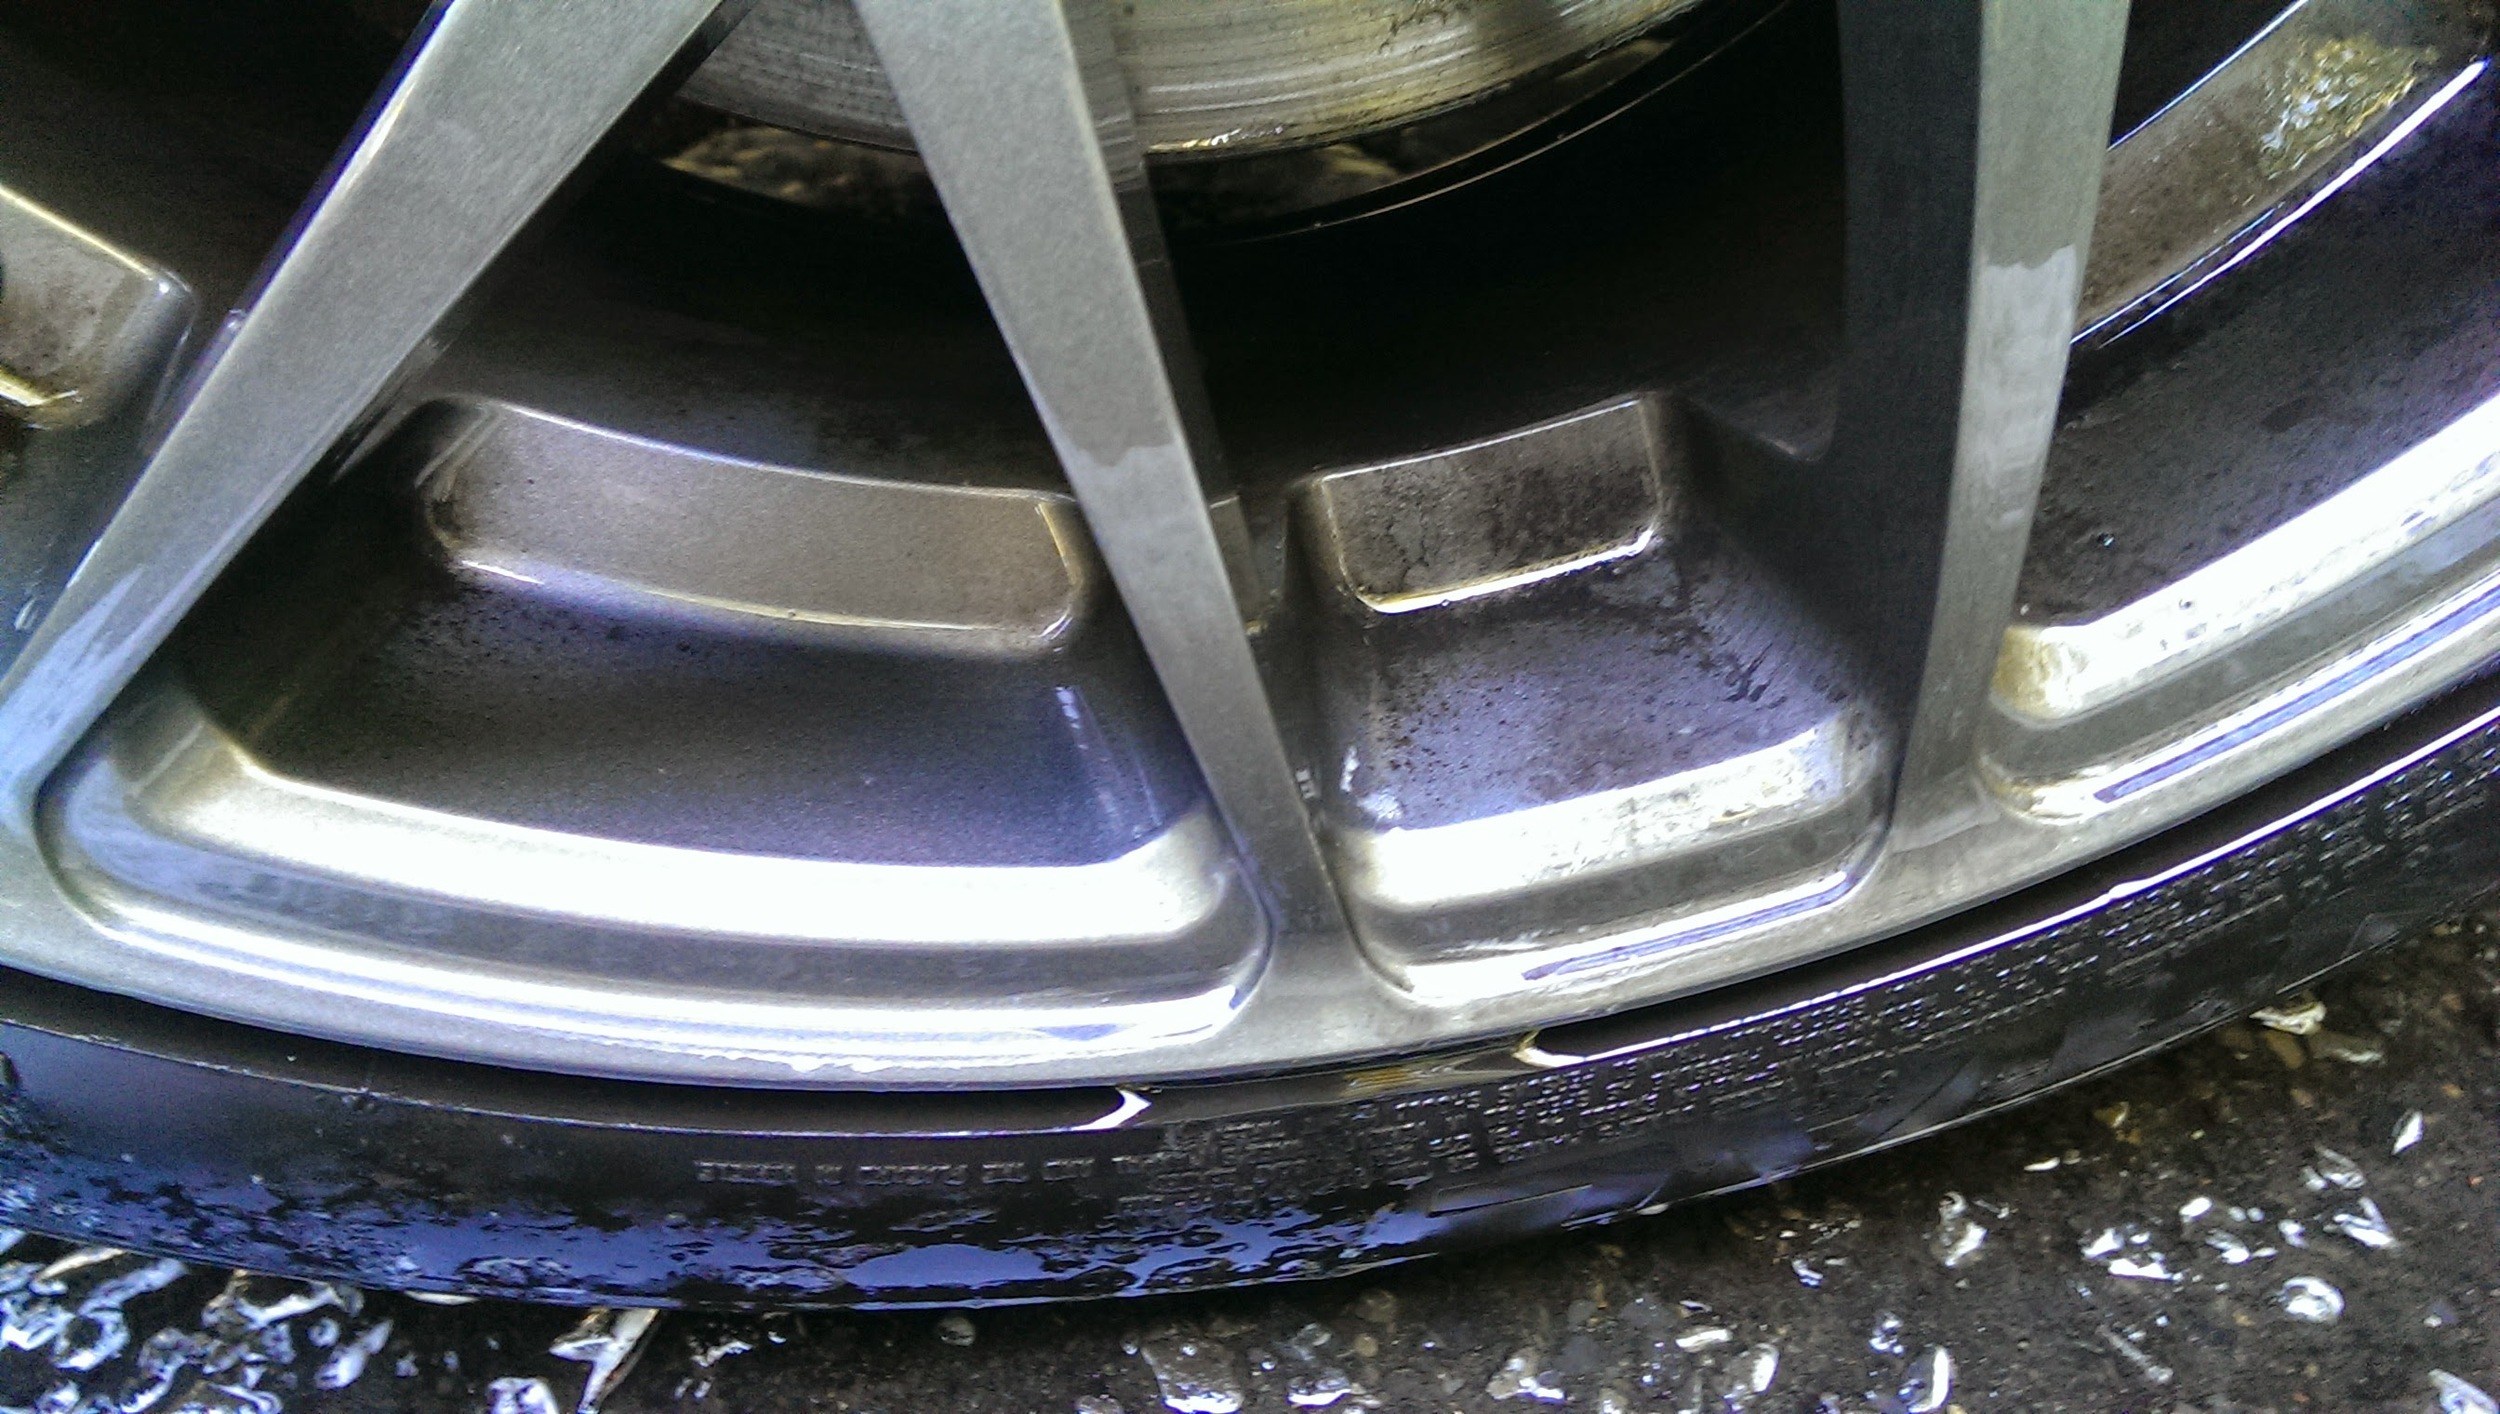 One pass with wheel cleaner - needed two.